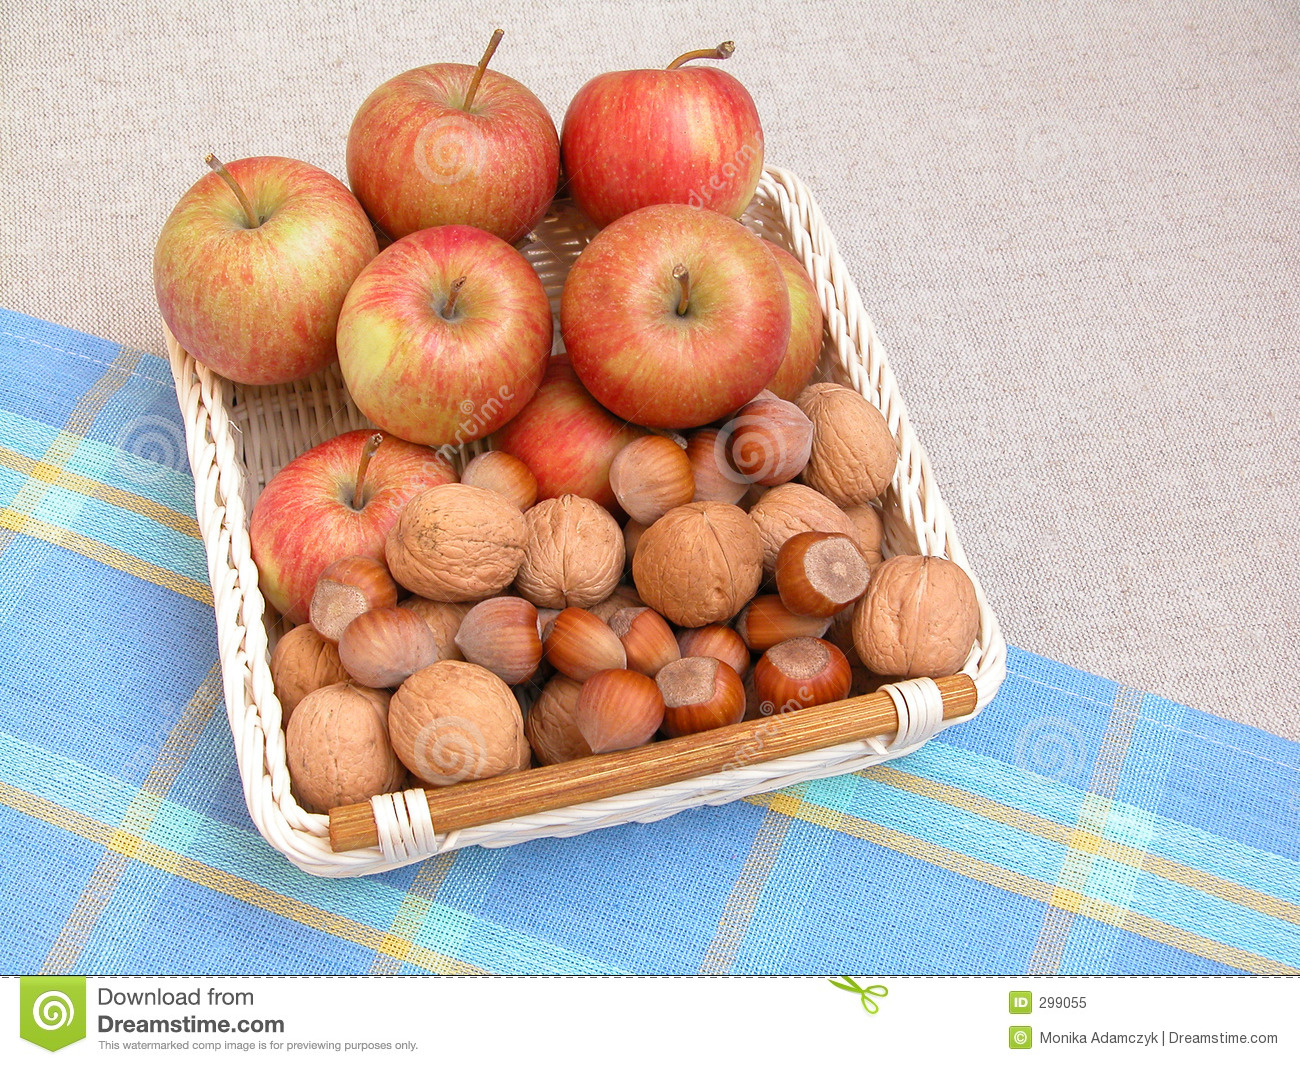 Apples And Walnuts Royalty Free Stock Photo - Image: 299055